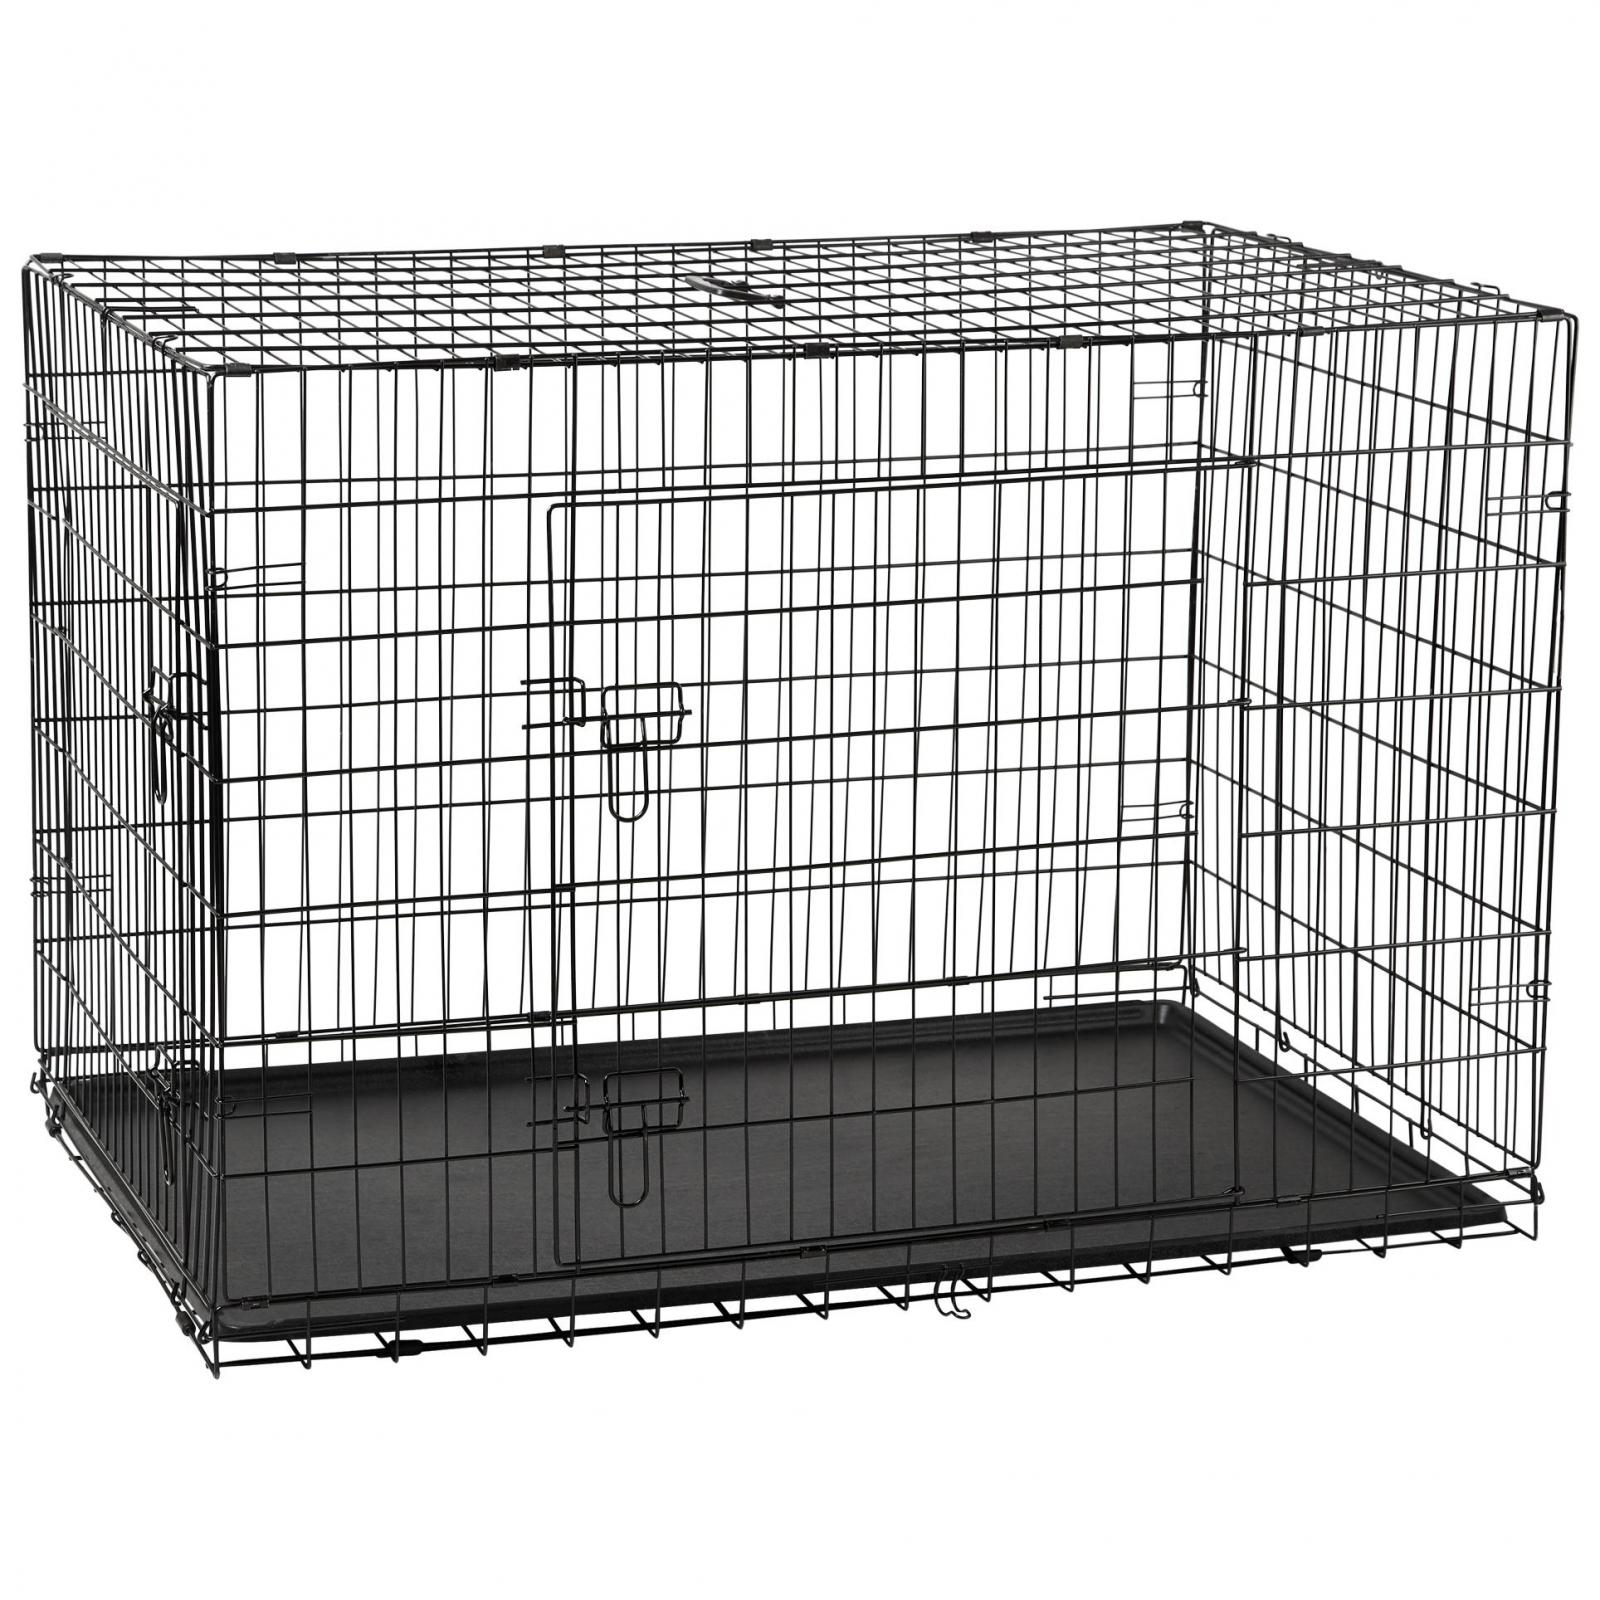 LEXI & ME Lexi & Me Black Wire Crate with Tray